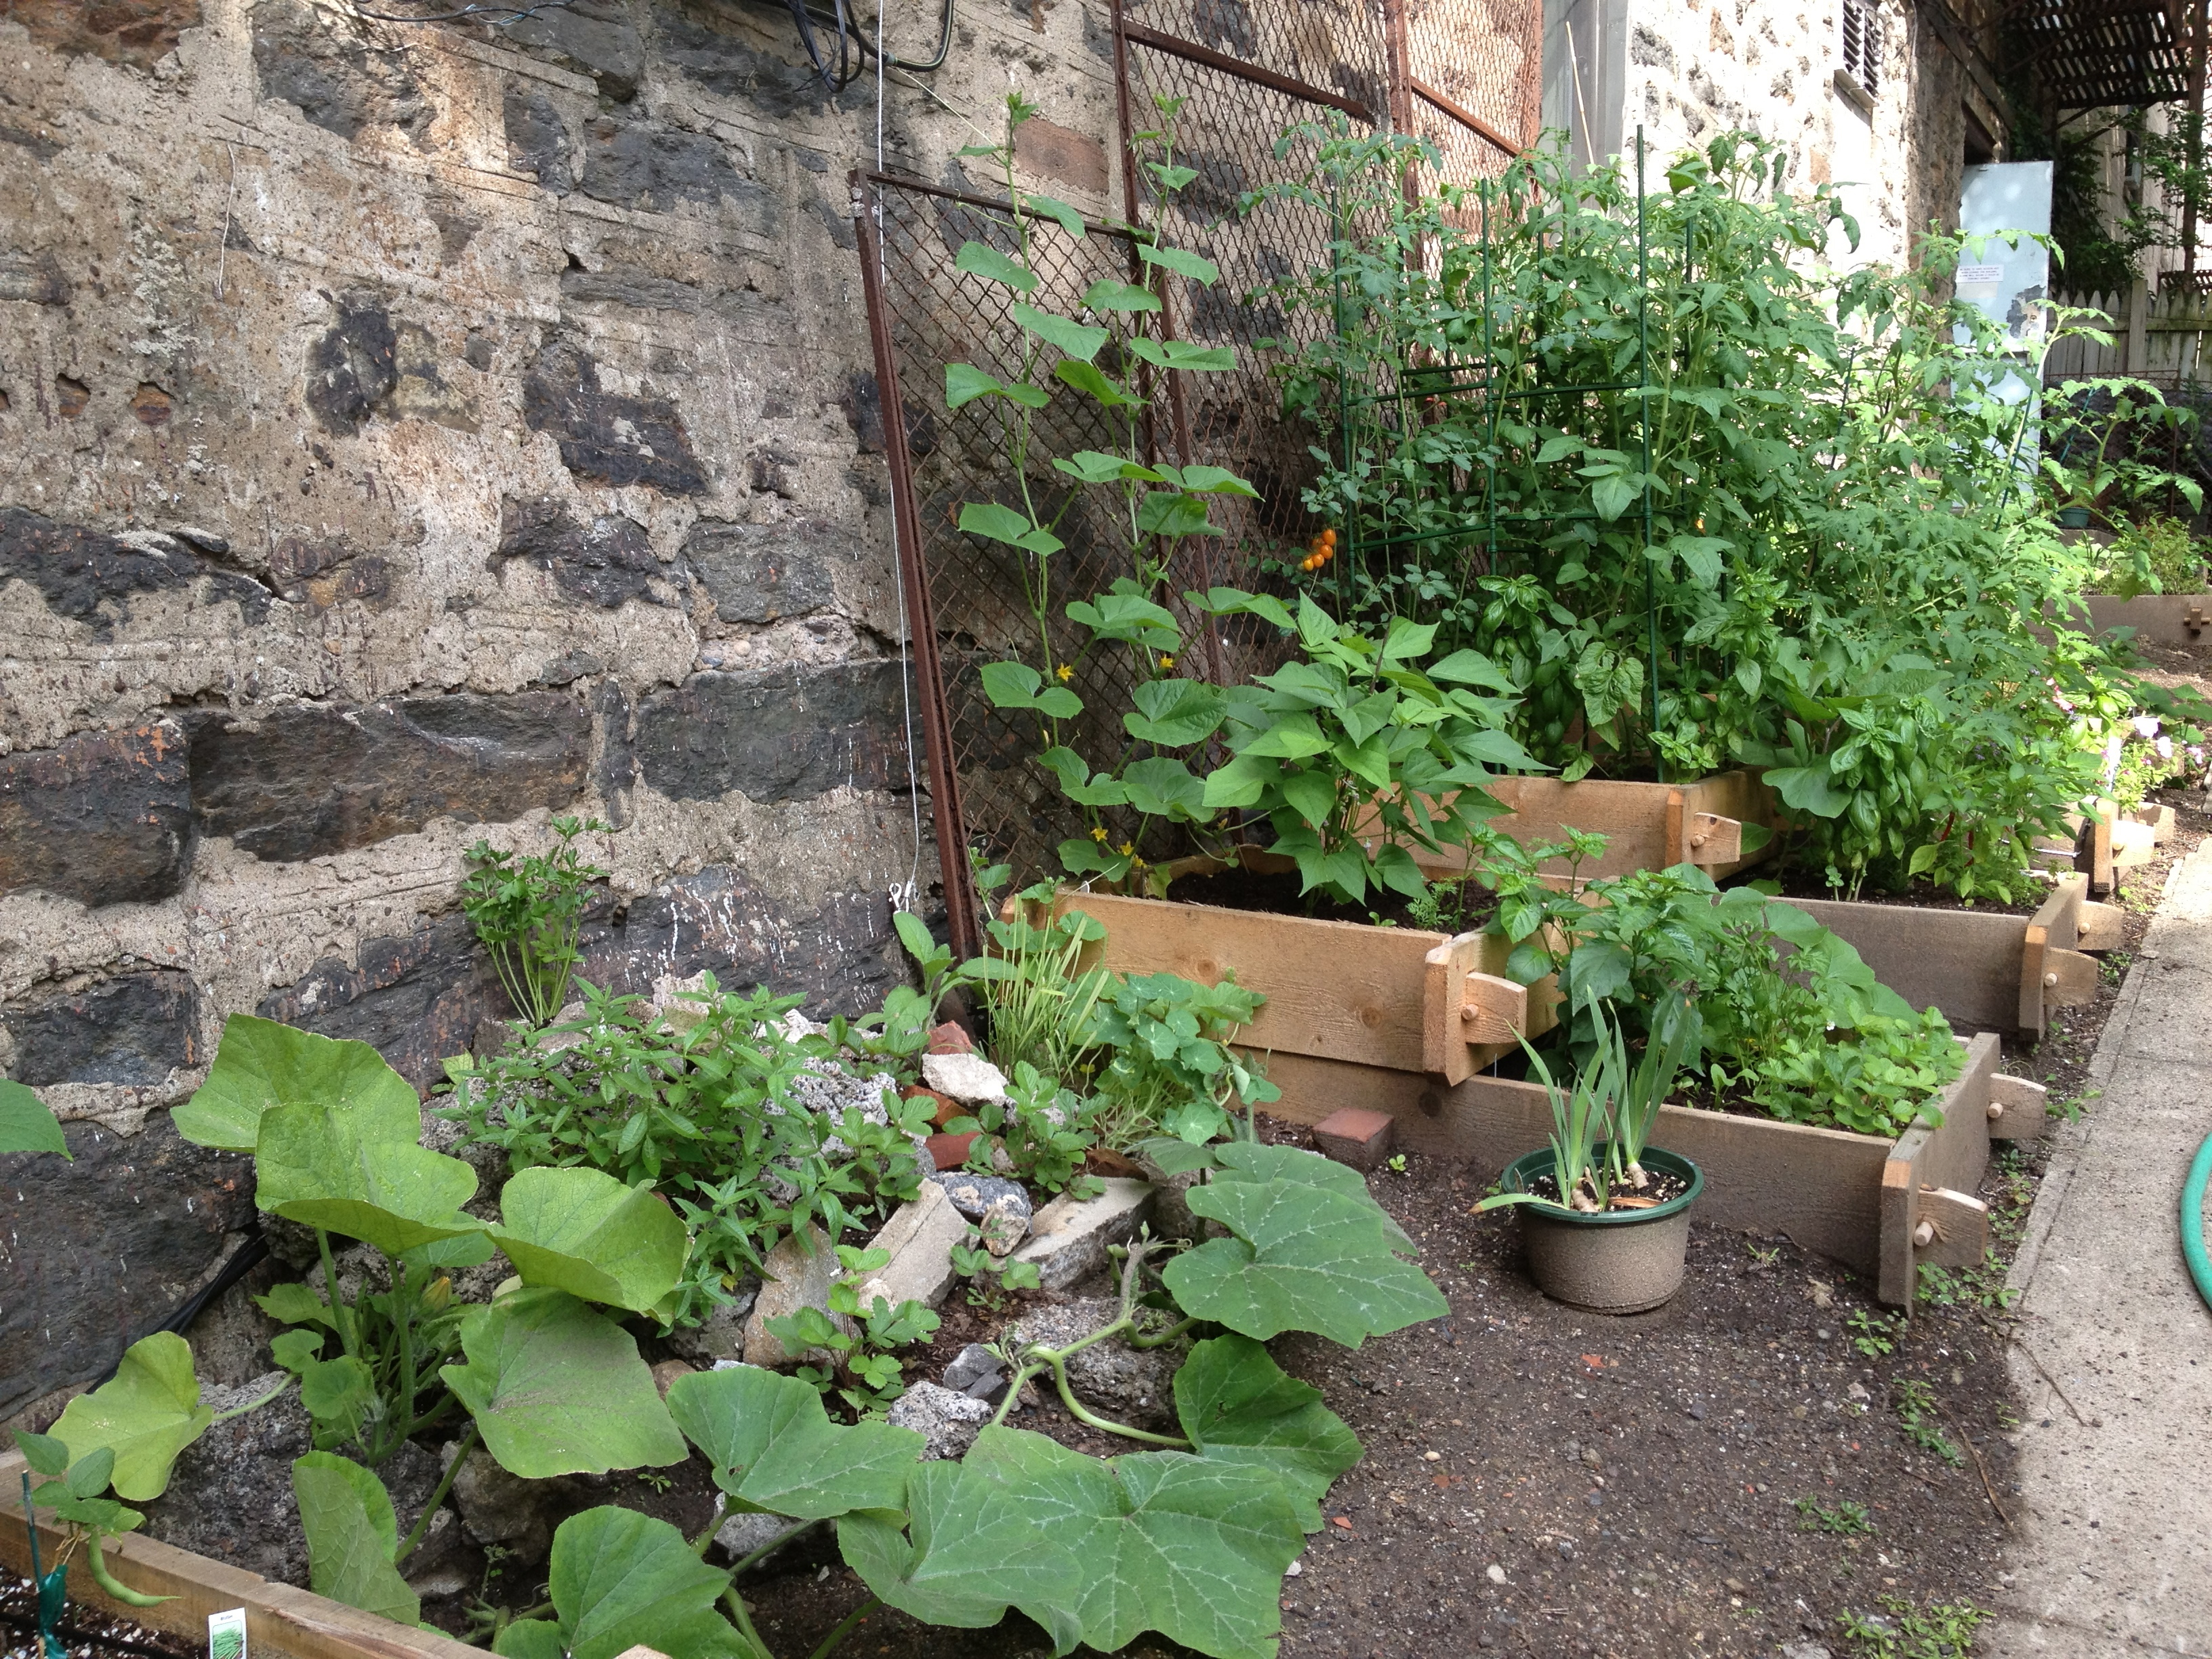 Picture of Things We've Grown and Found in the Garden